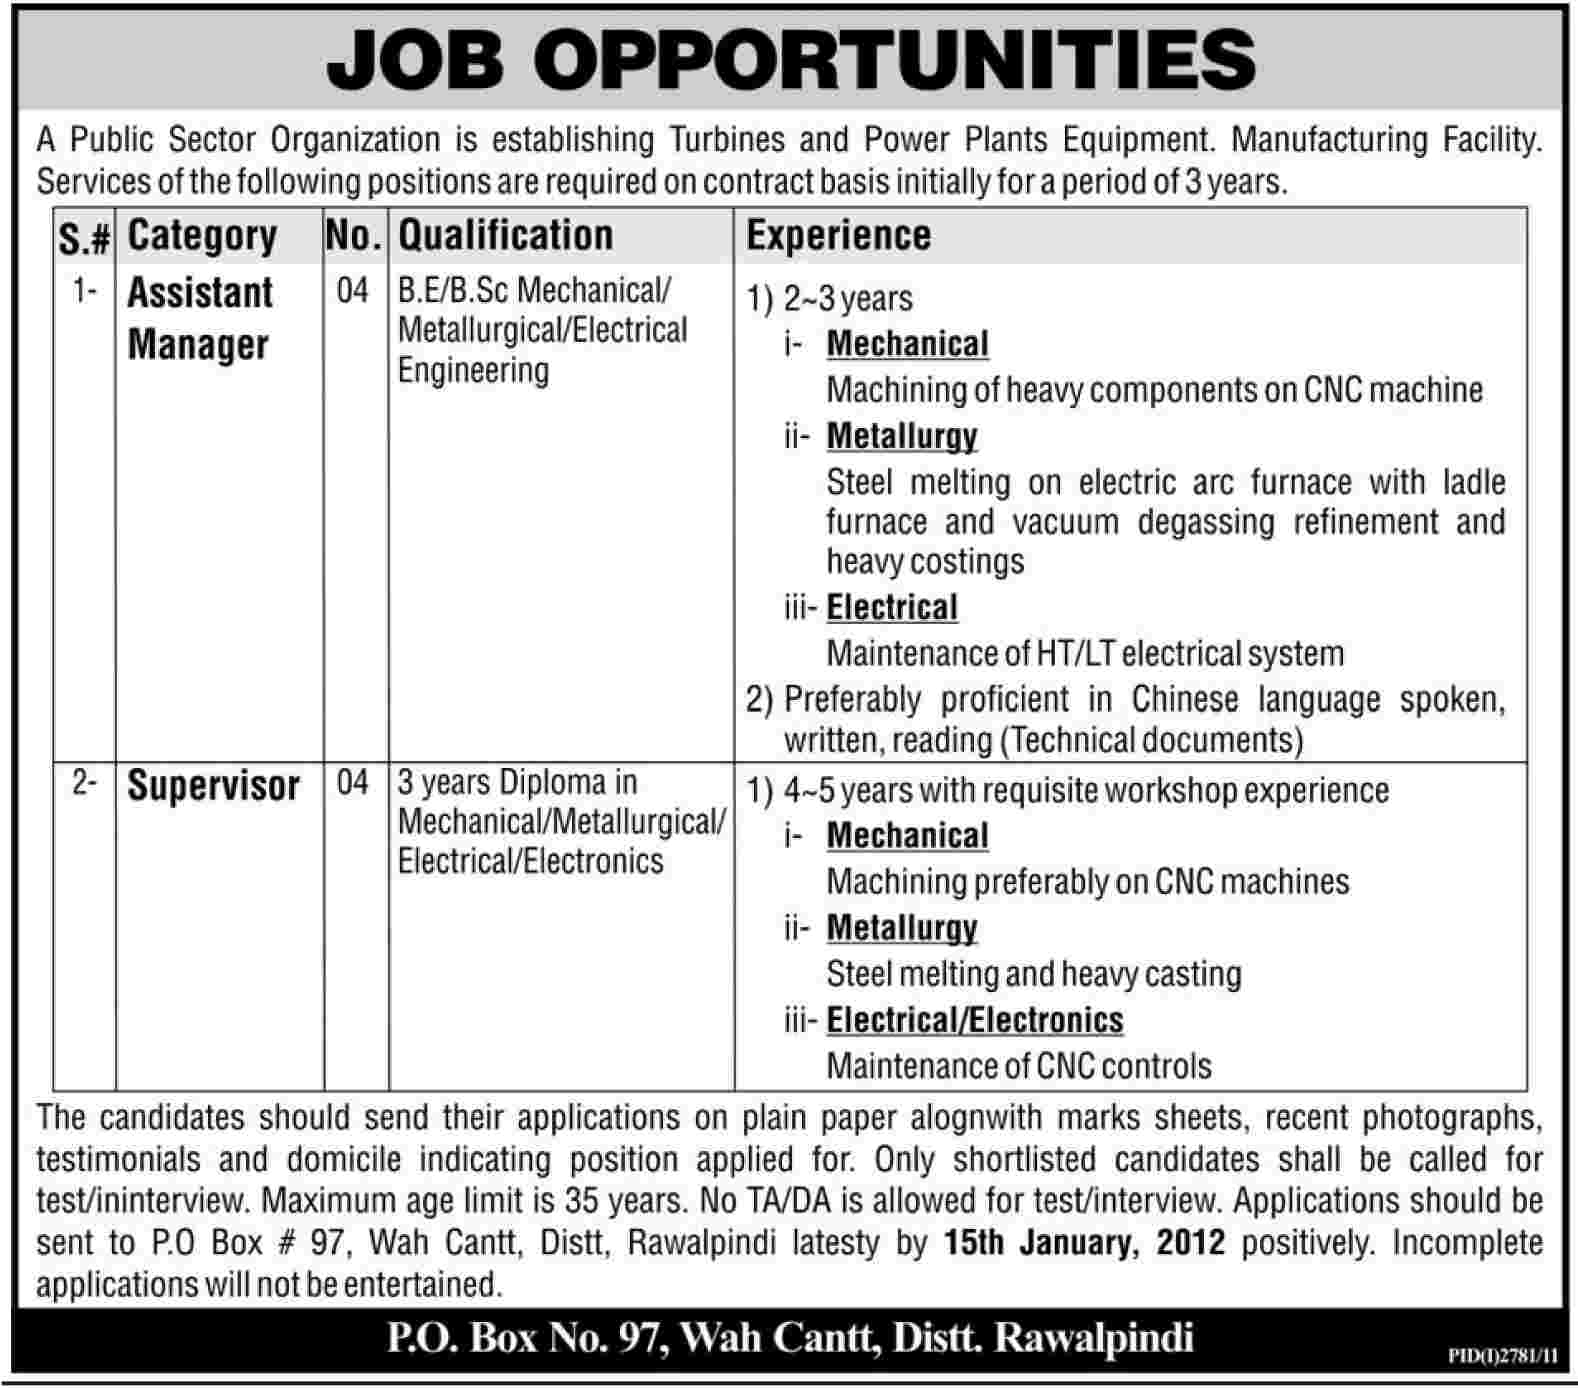 Public Sector Organization Required Assistant Managers and Supervisors